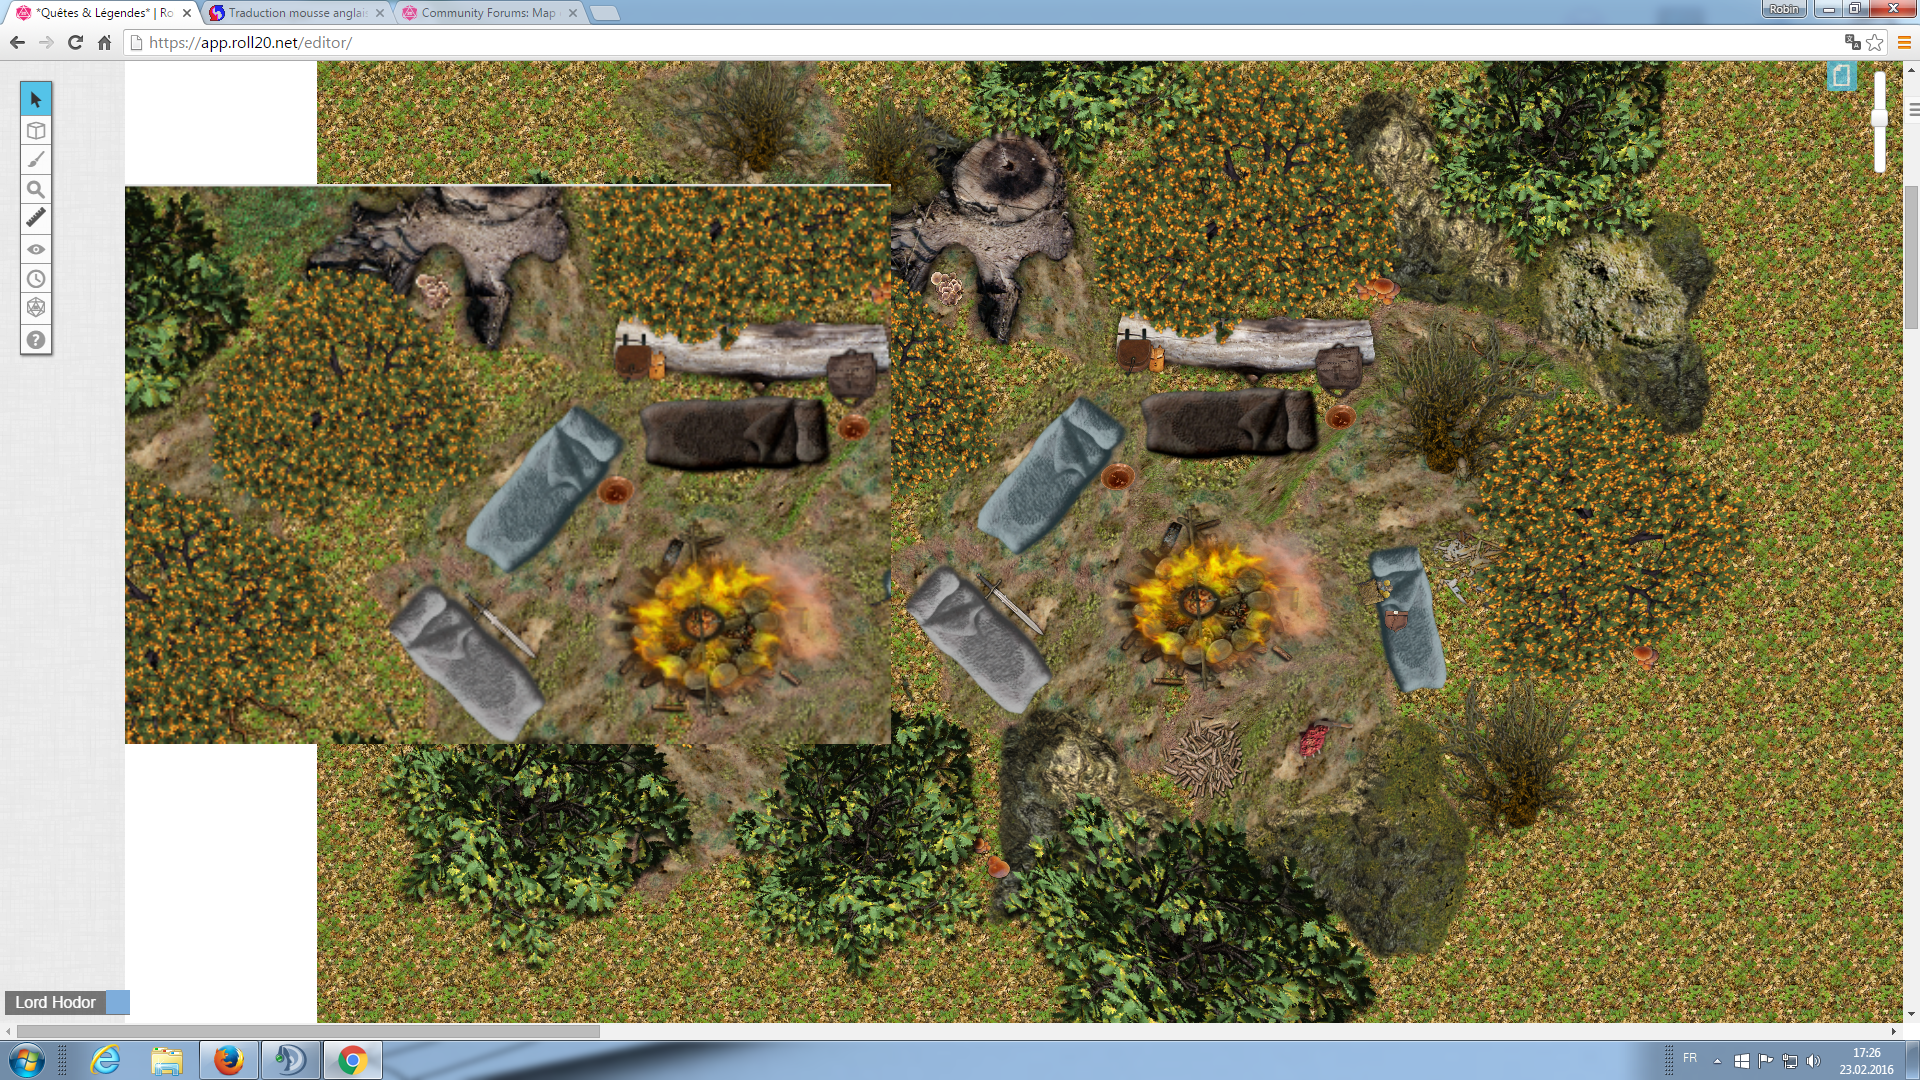 Community Forums: Map creation | Roll20: Online virtual tabletop on